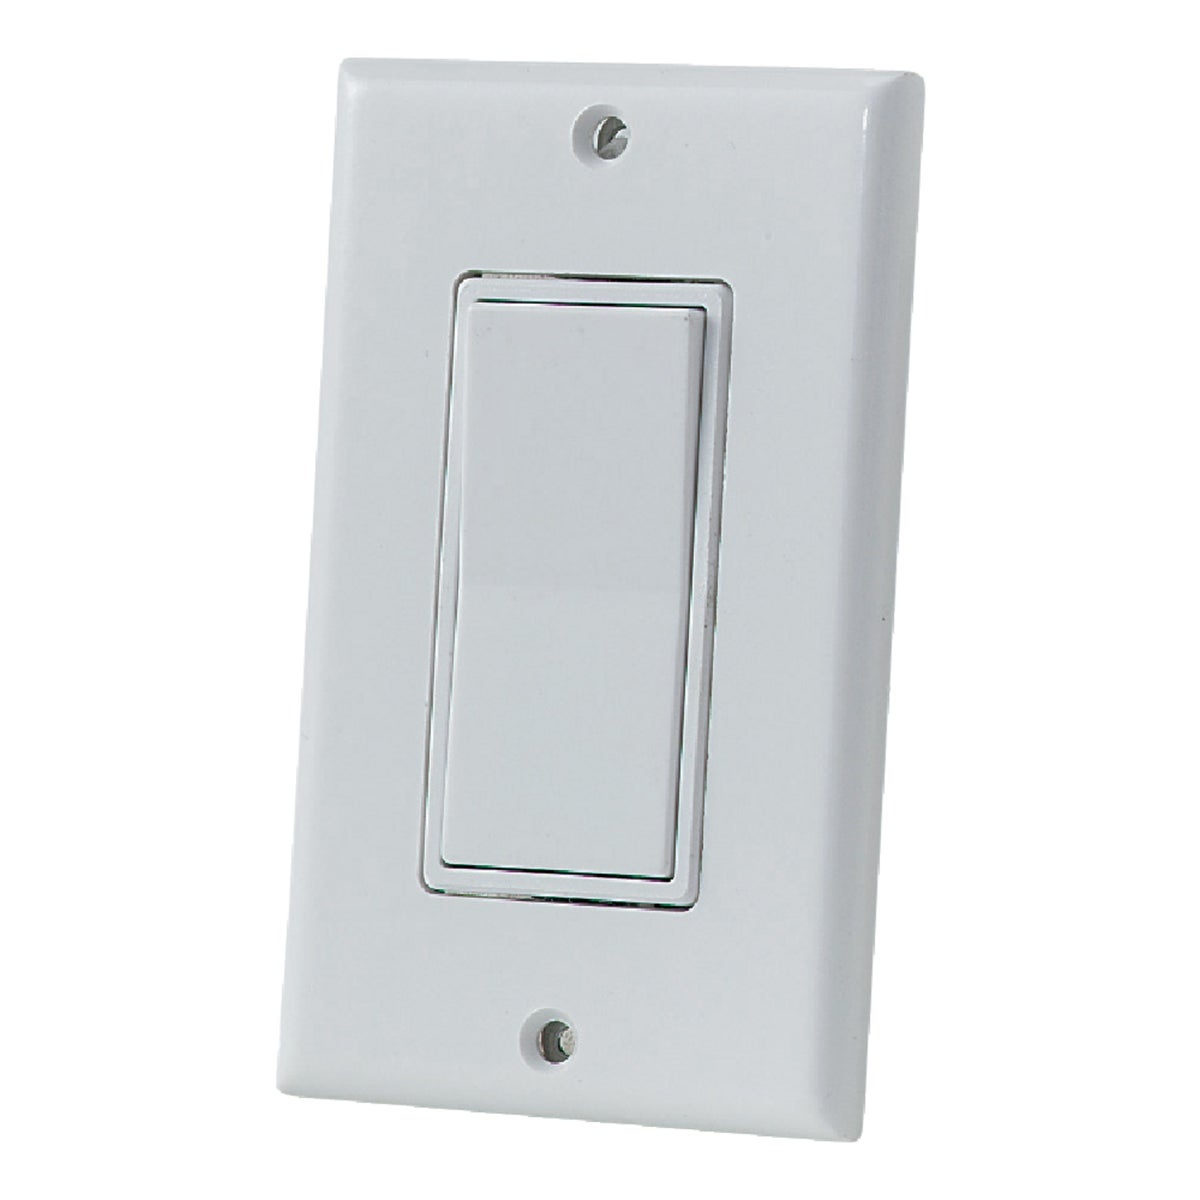 WHT 3-WAY SWITCH - DB2-5673-00W by Leviton Mfg Co